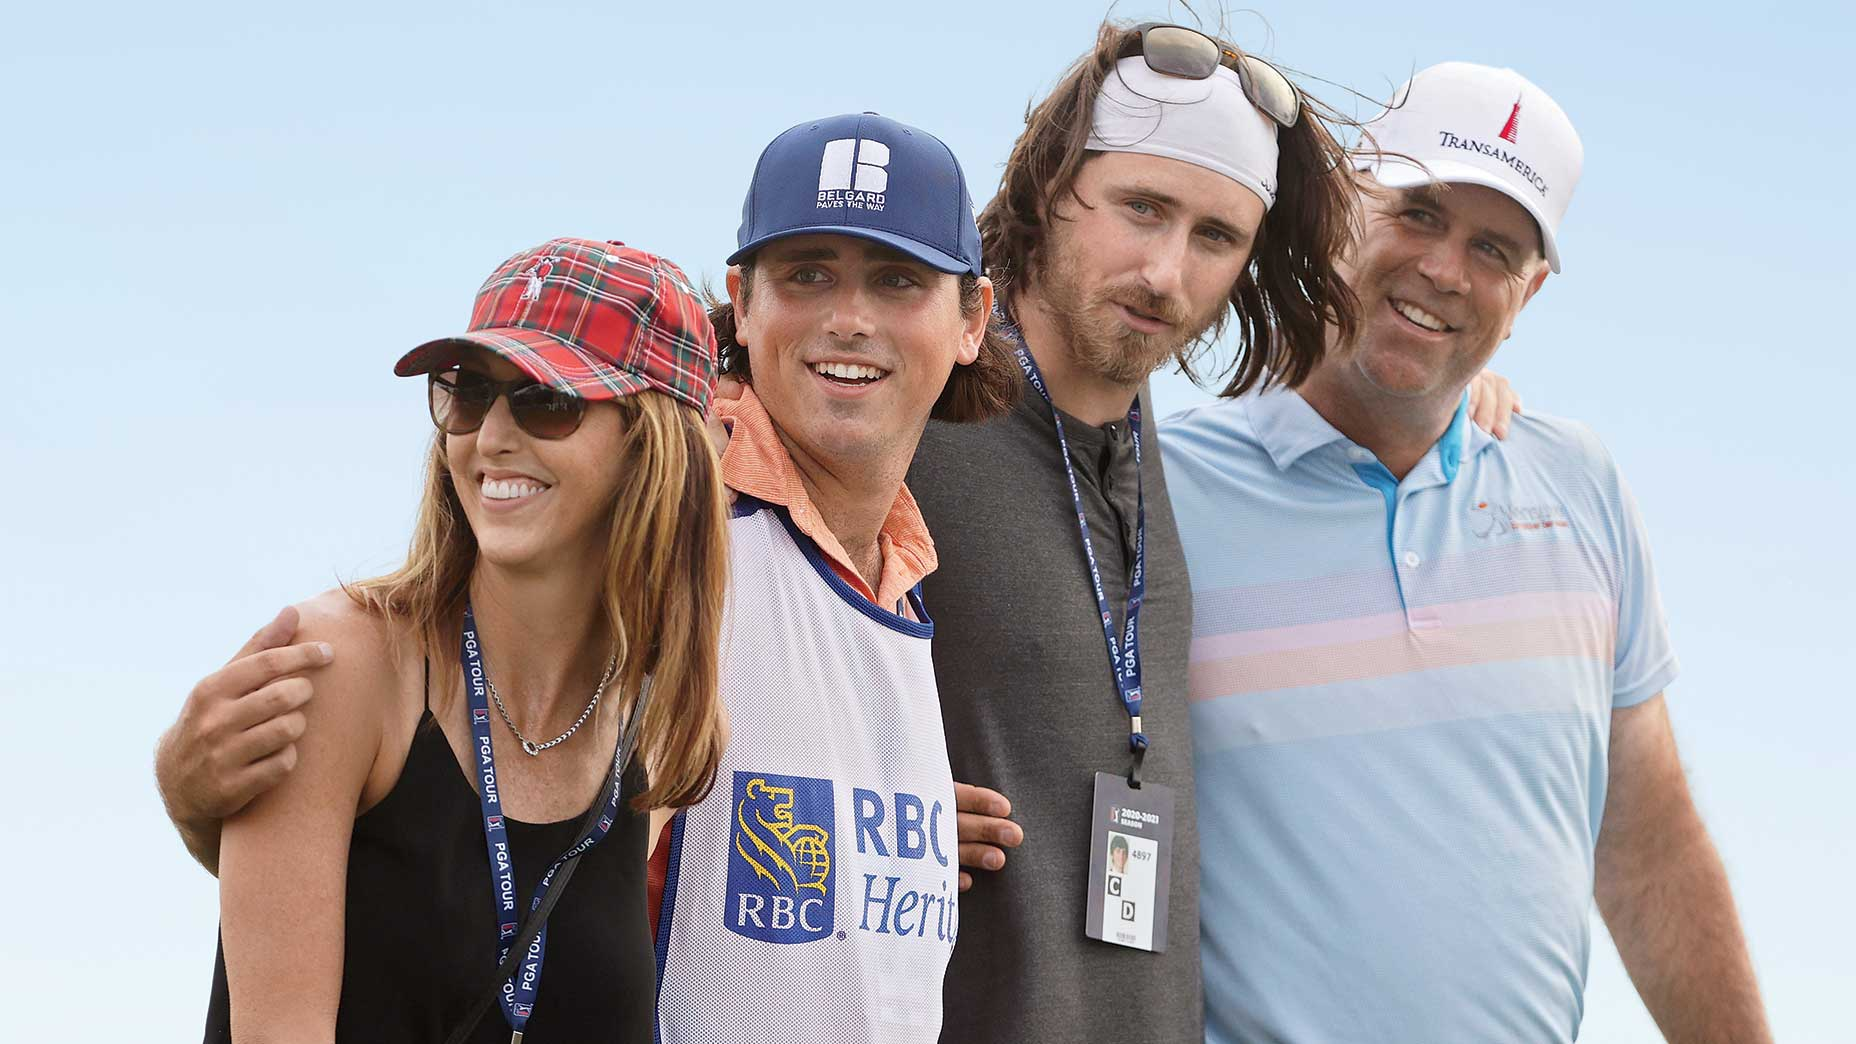 Stewart Cink celebrated his RBC Heritage win with wife, Lisa, and sons Reagan and Connor.